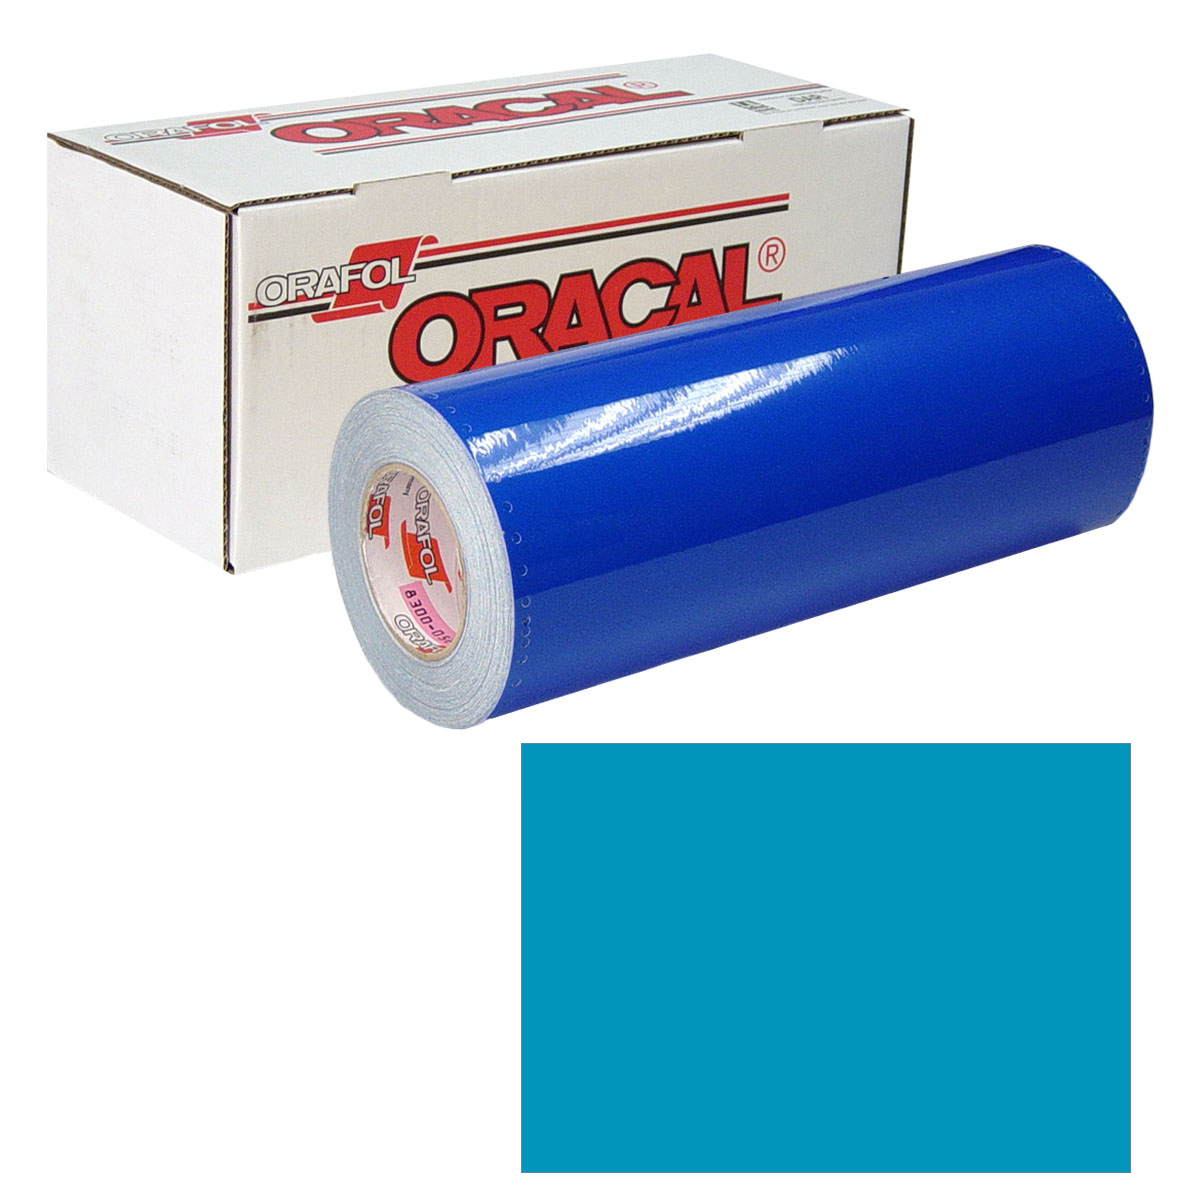 ORACAL 631 30in X 50yd 174 Teal